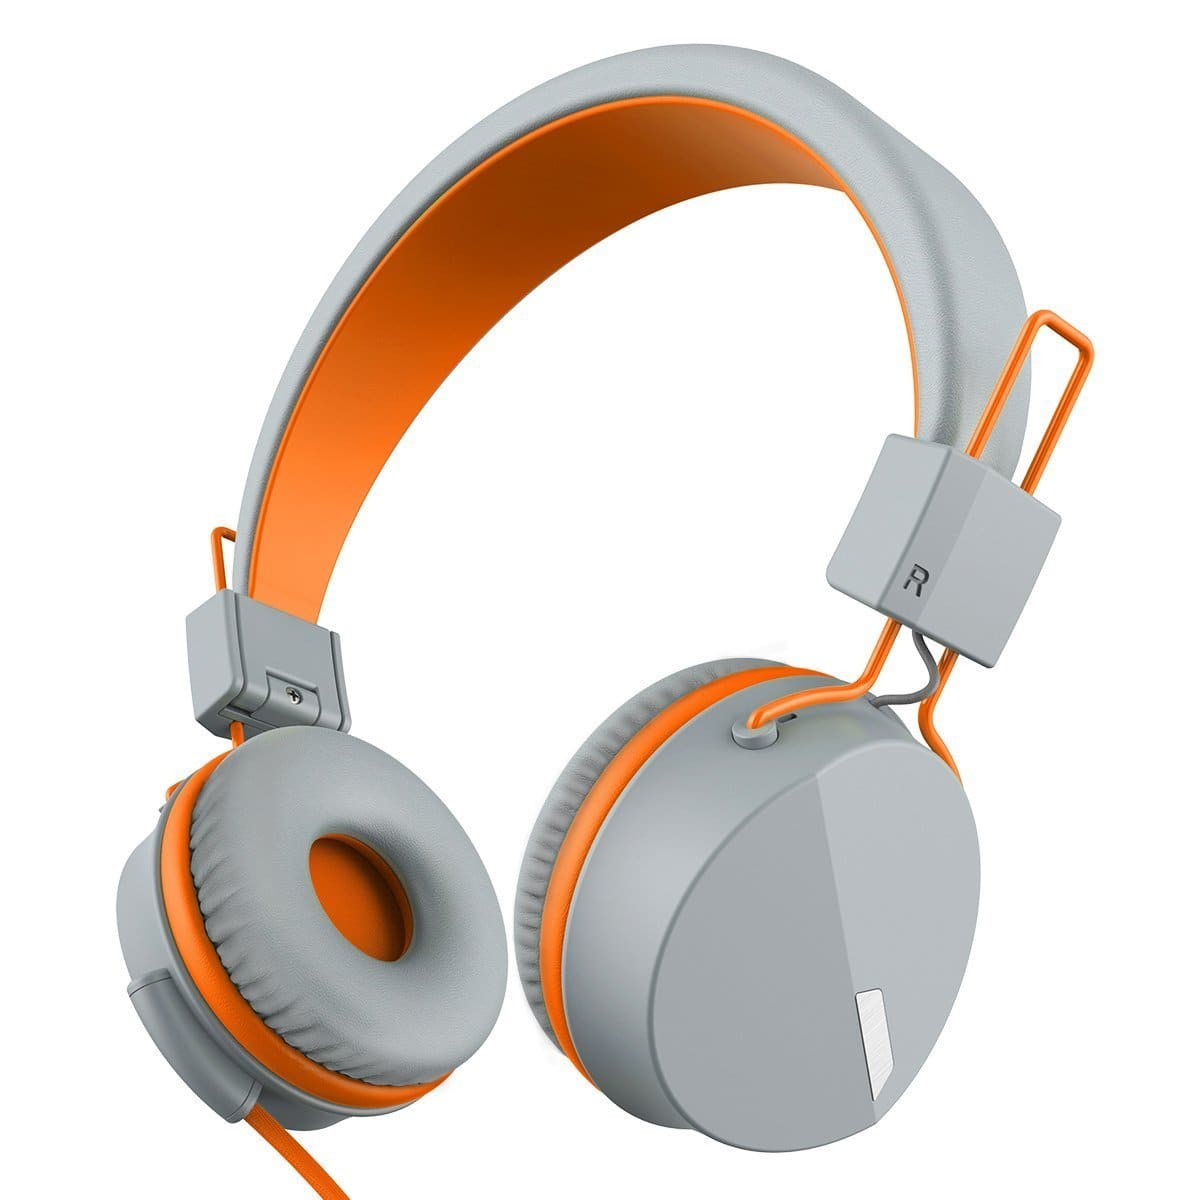 Kanen I39 Headphones On ear Foldable Noise Isolating Headsets with Mic and Remote for $14.60 with code (Reg. $20.99)